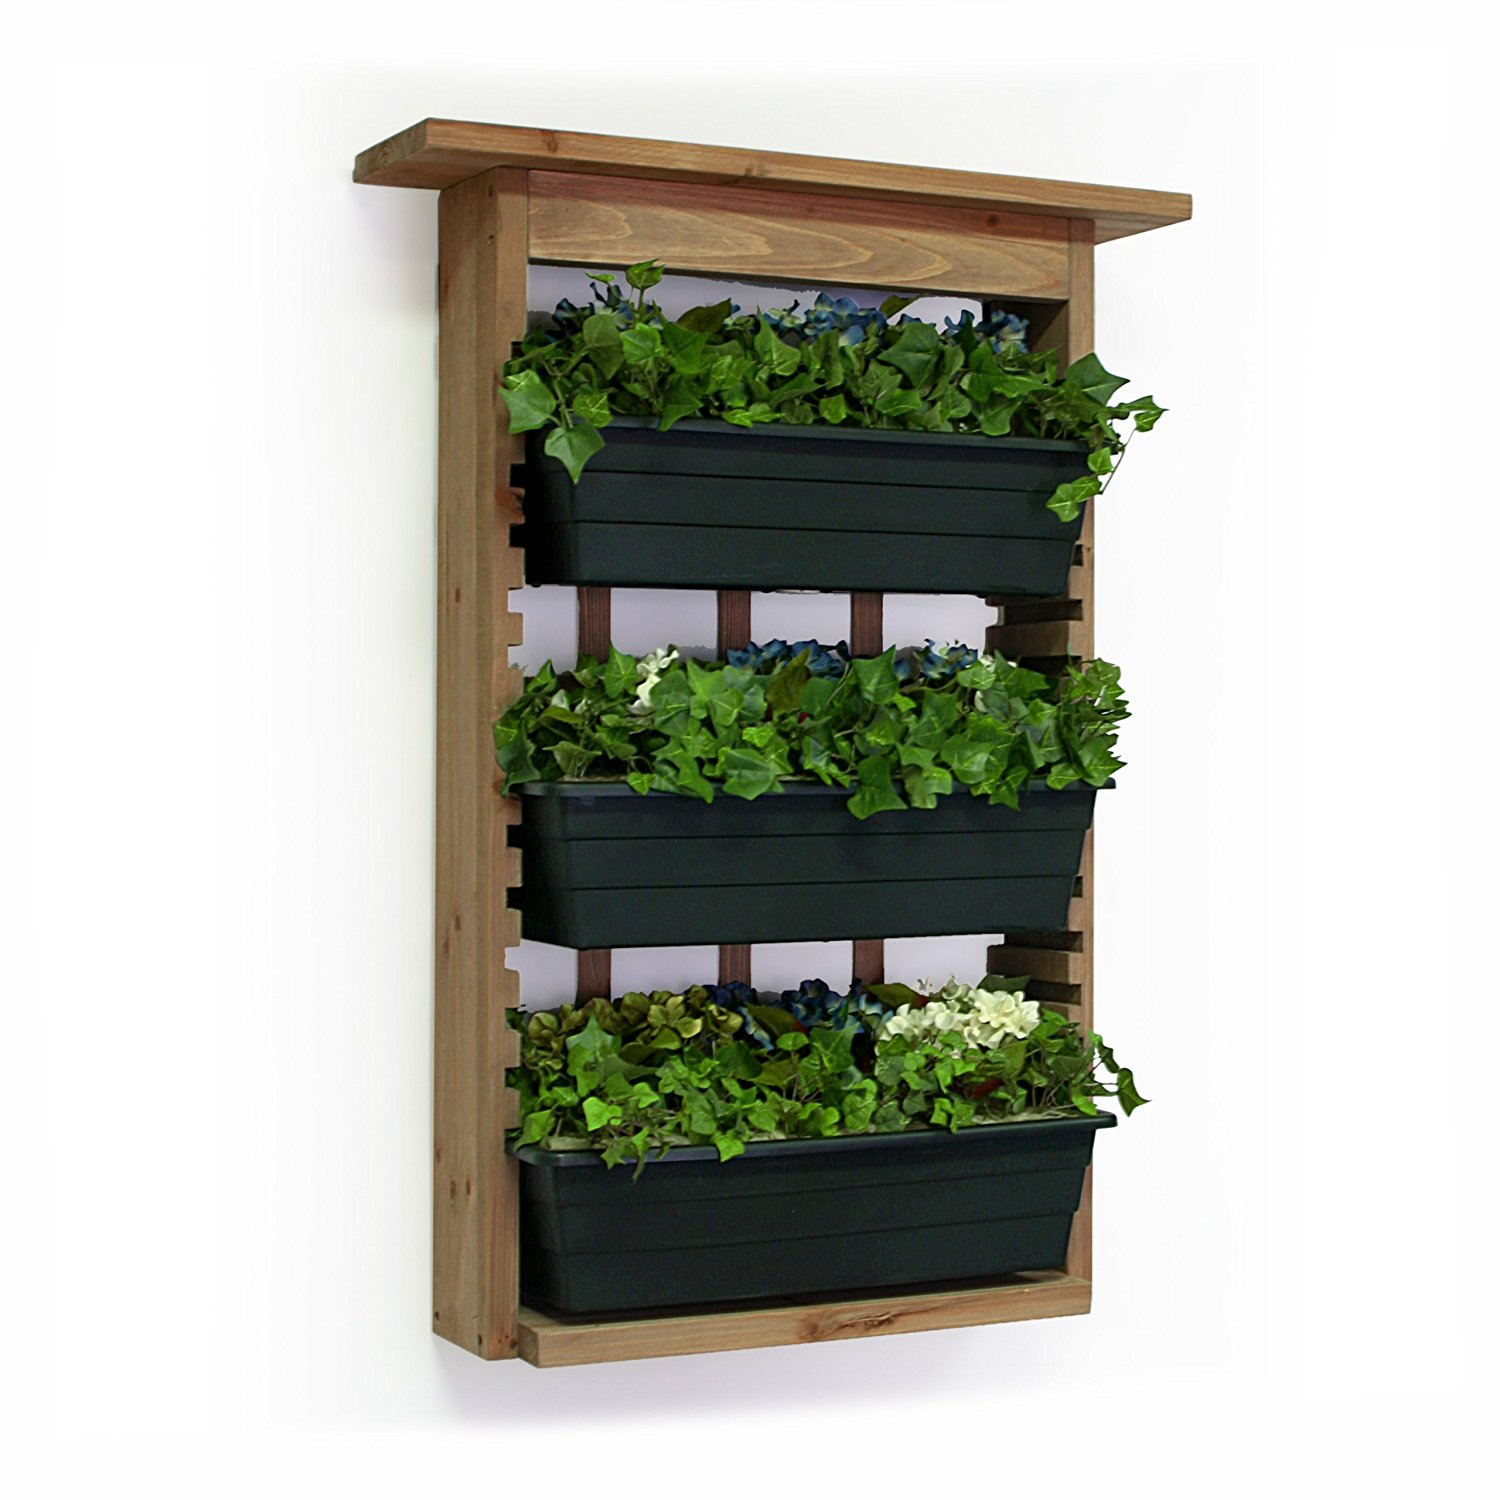 Garden View, Vertical Living Wall Planter